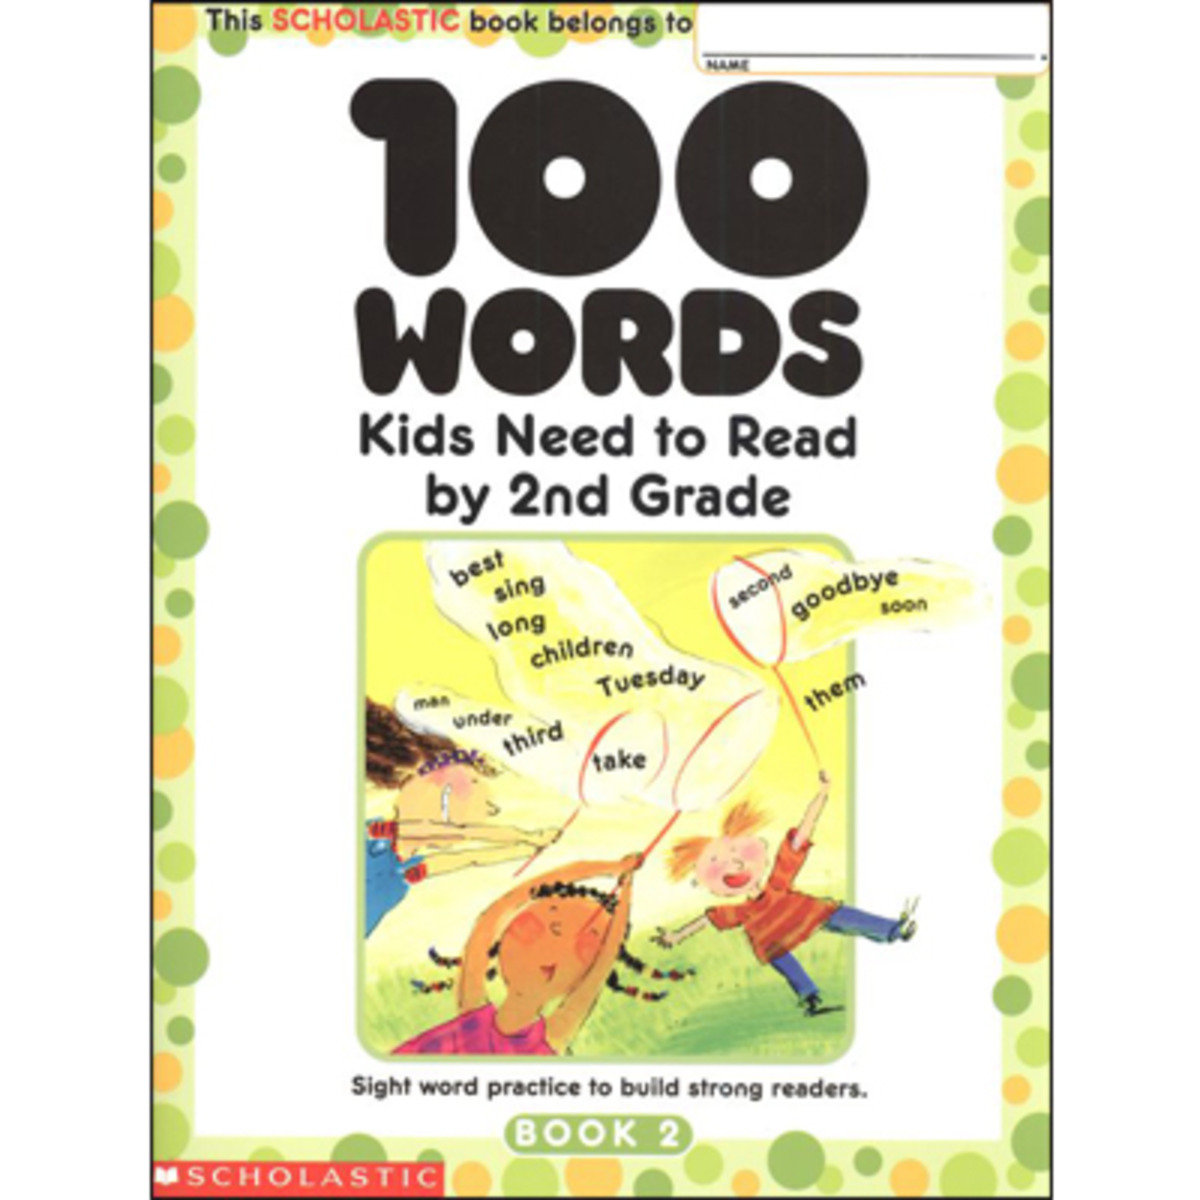 100 Words Kids Need to Read by 2nd Grade 9780439399302